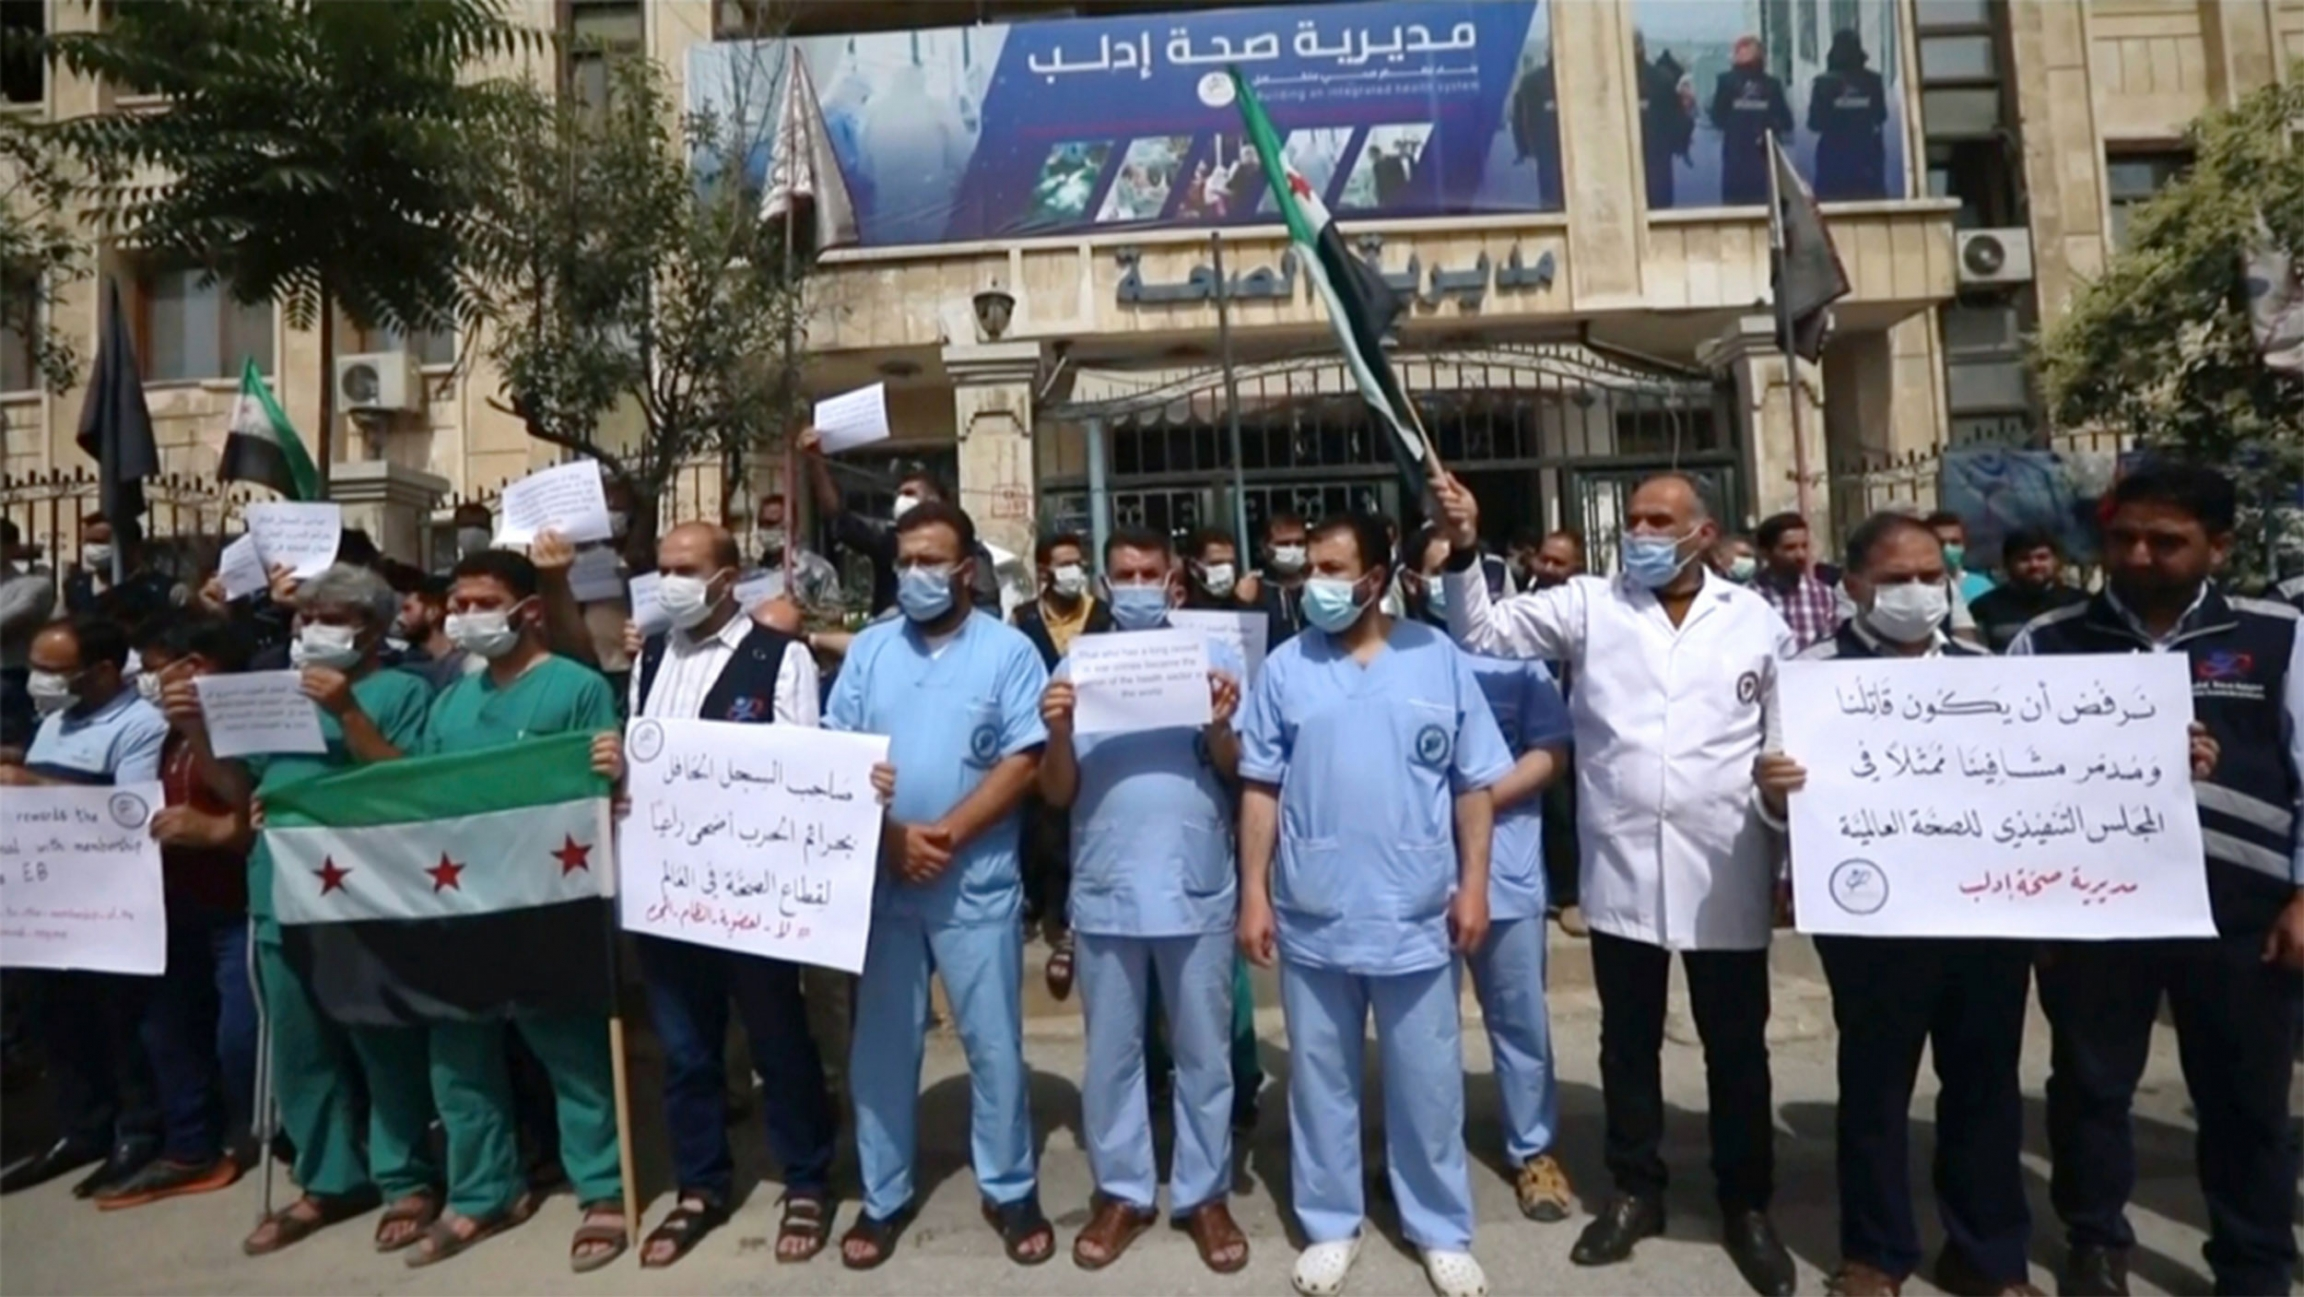 Doctors stand in front of a hospital holding signs